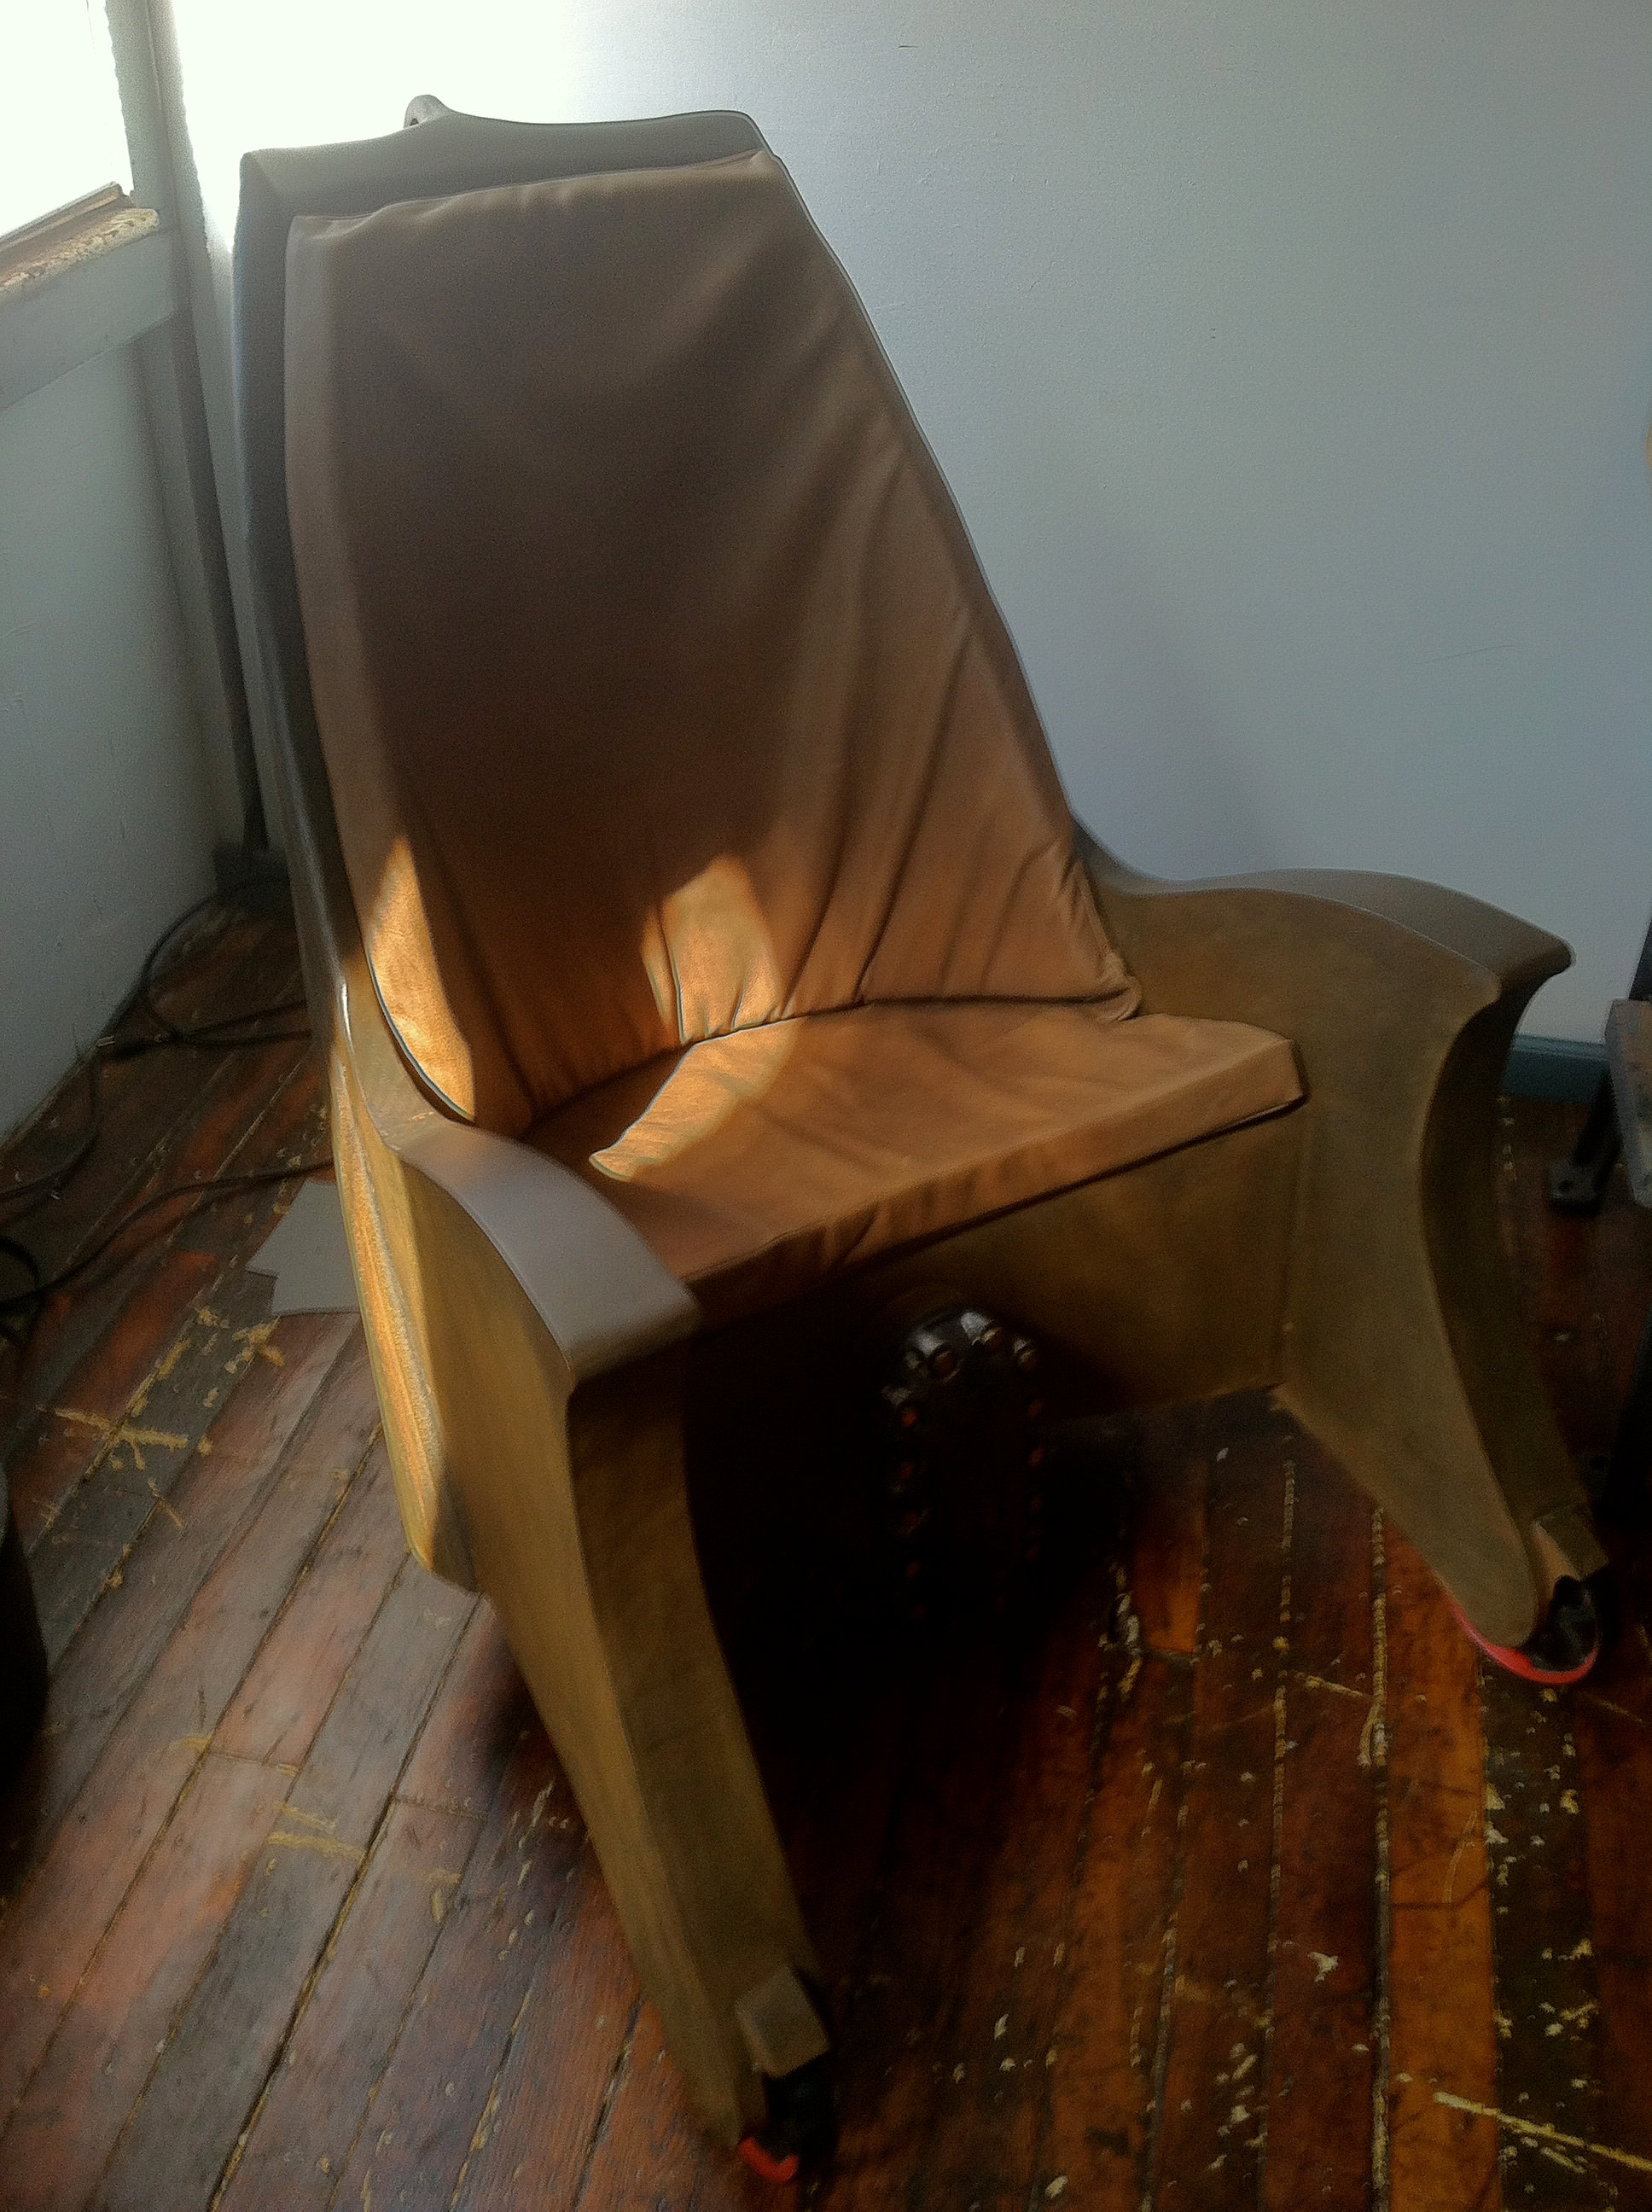 Smoothly welded together to create this awesome man cave chair sold